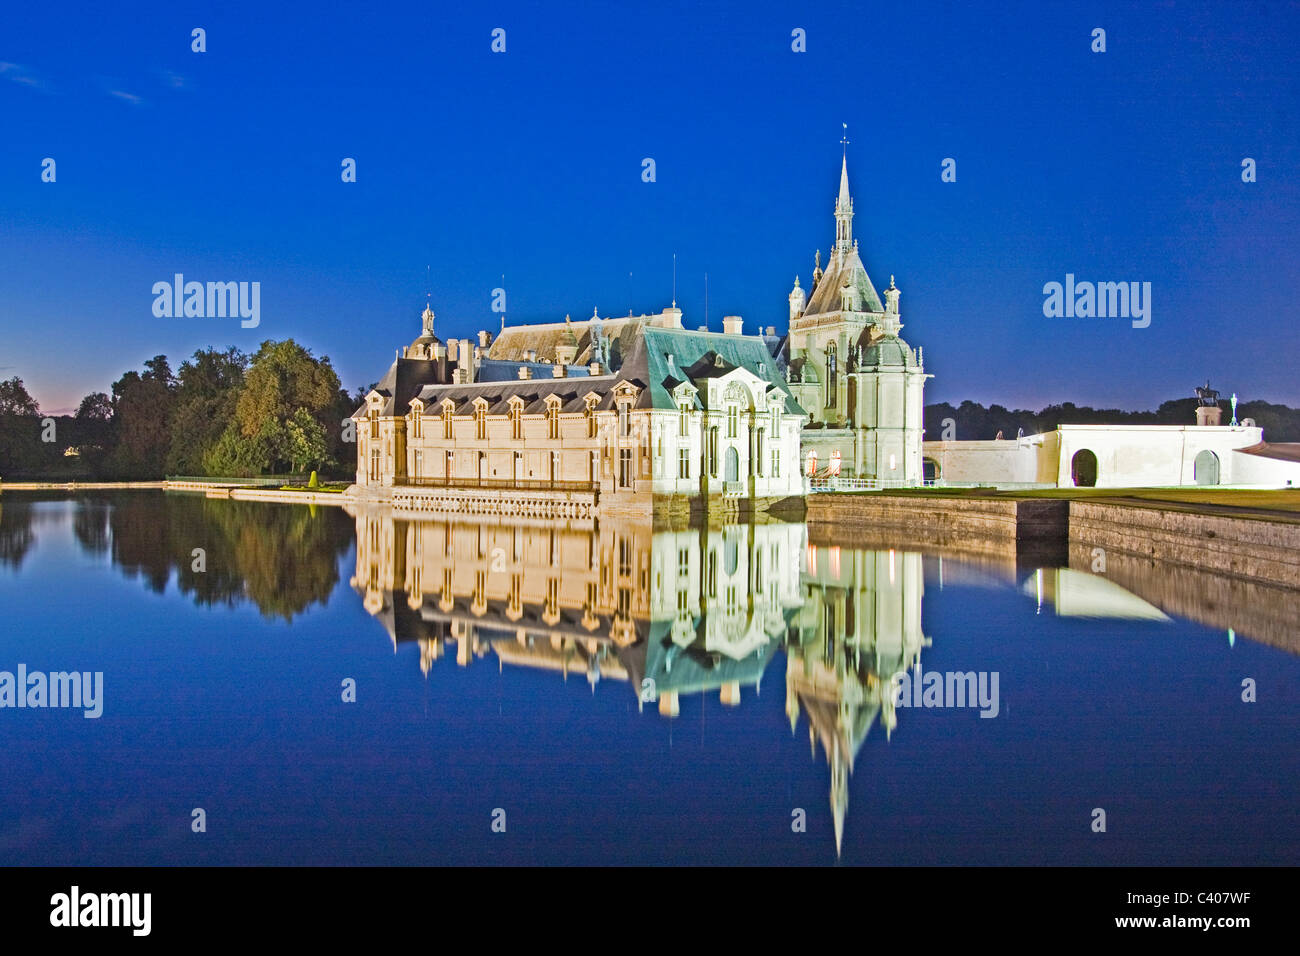 France, Europe, Villandry, Picardy, castle, world cultural heritage, at night, water, reflection Stock Photo